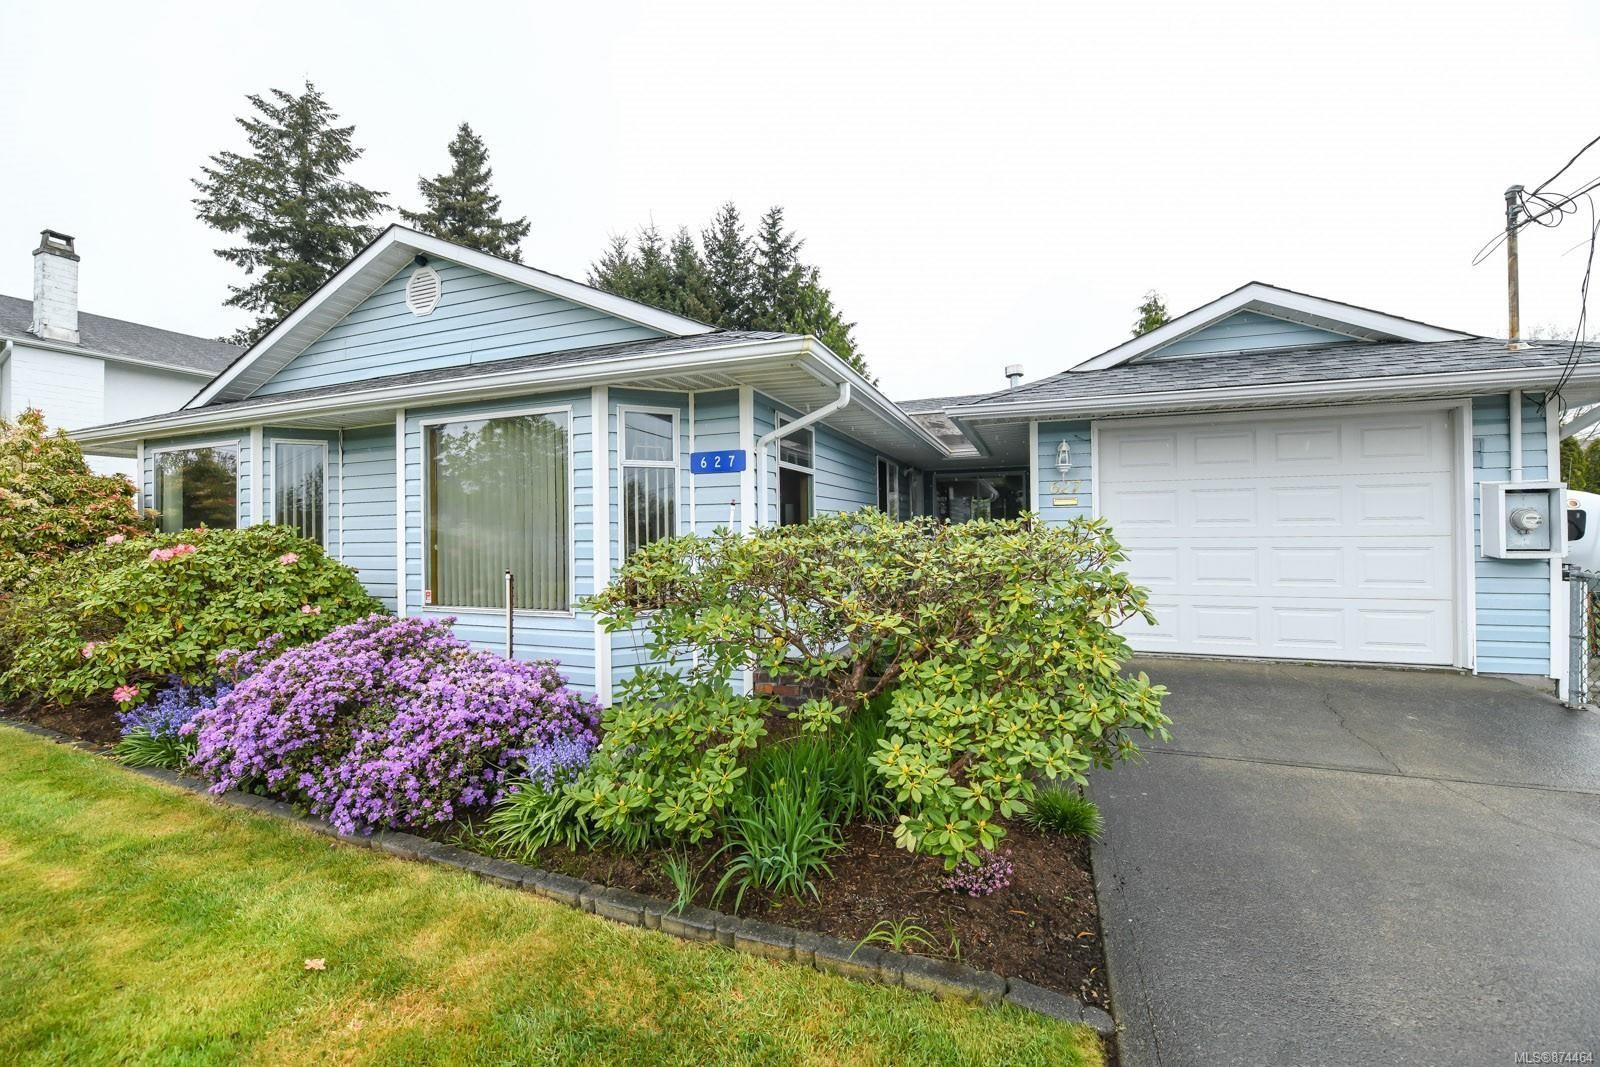 Main Photo: 627 23rd St in : CV Courtenay City House for sale (Comox Valley)  : MLS®# 874464